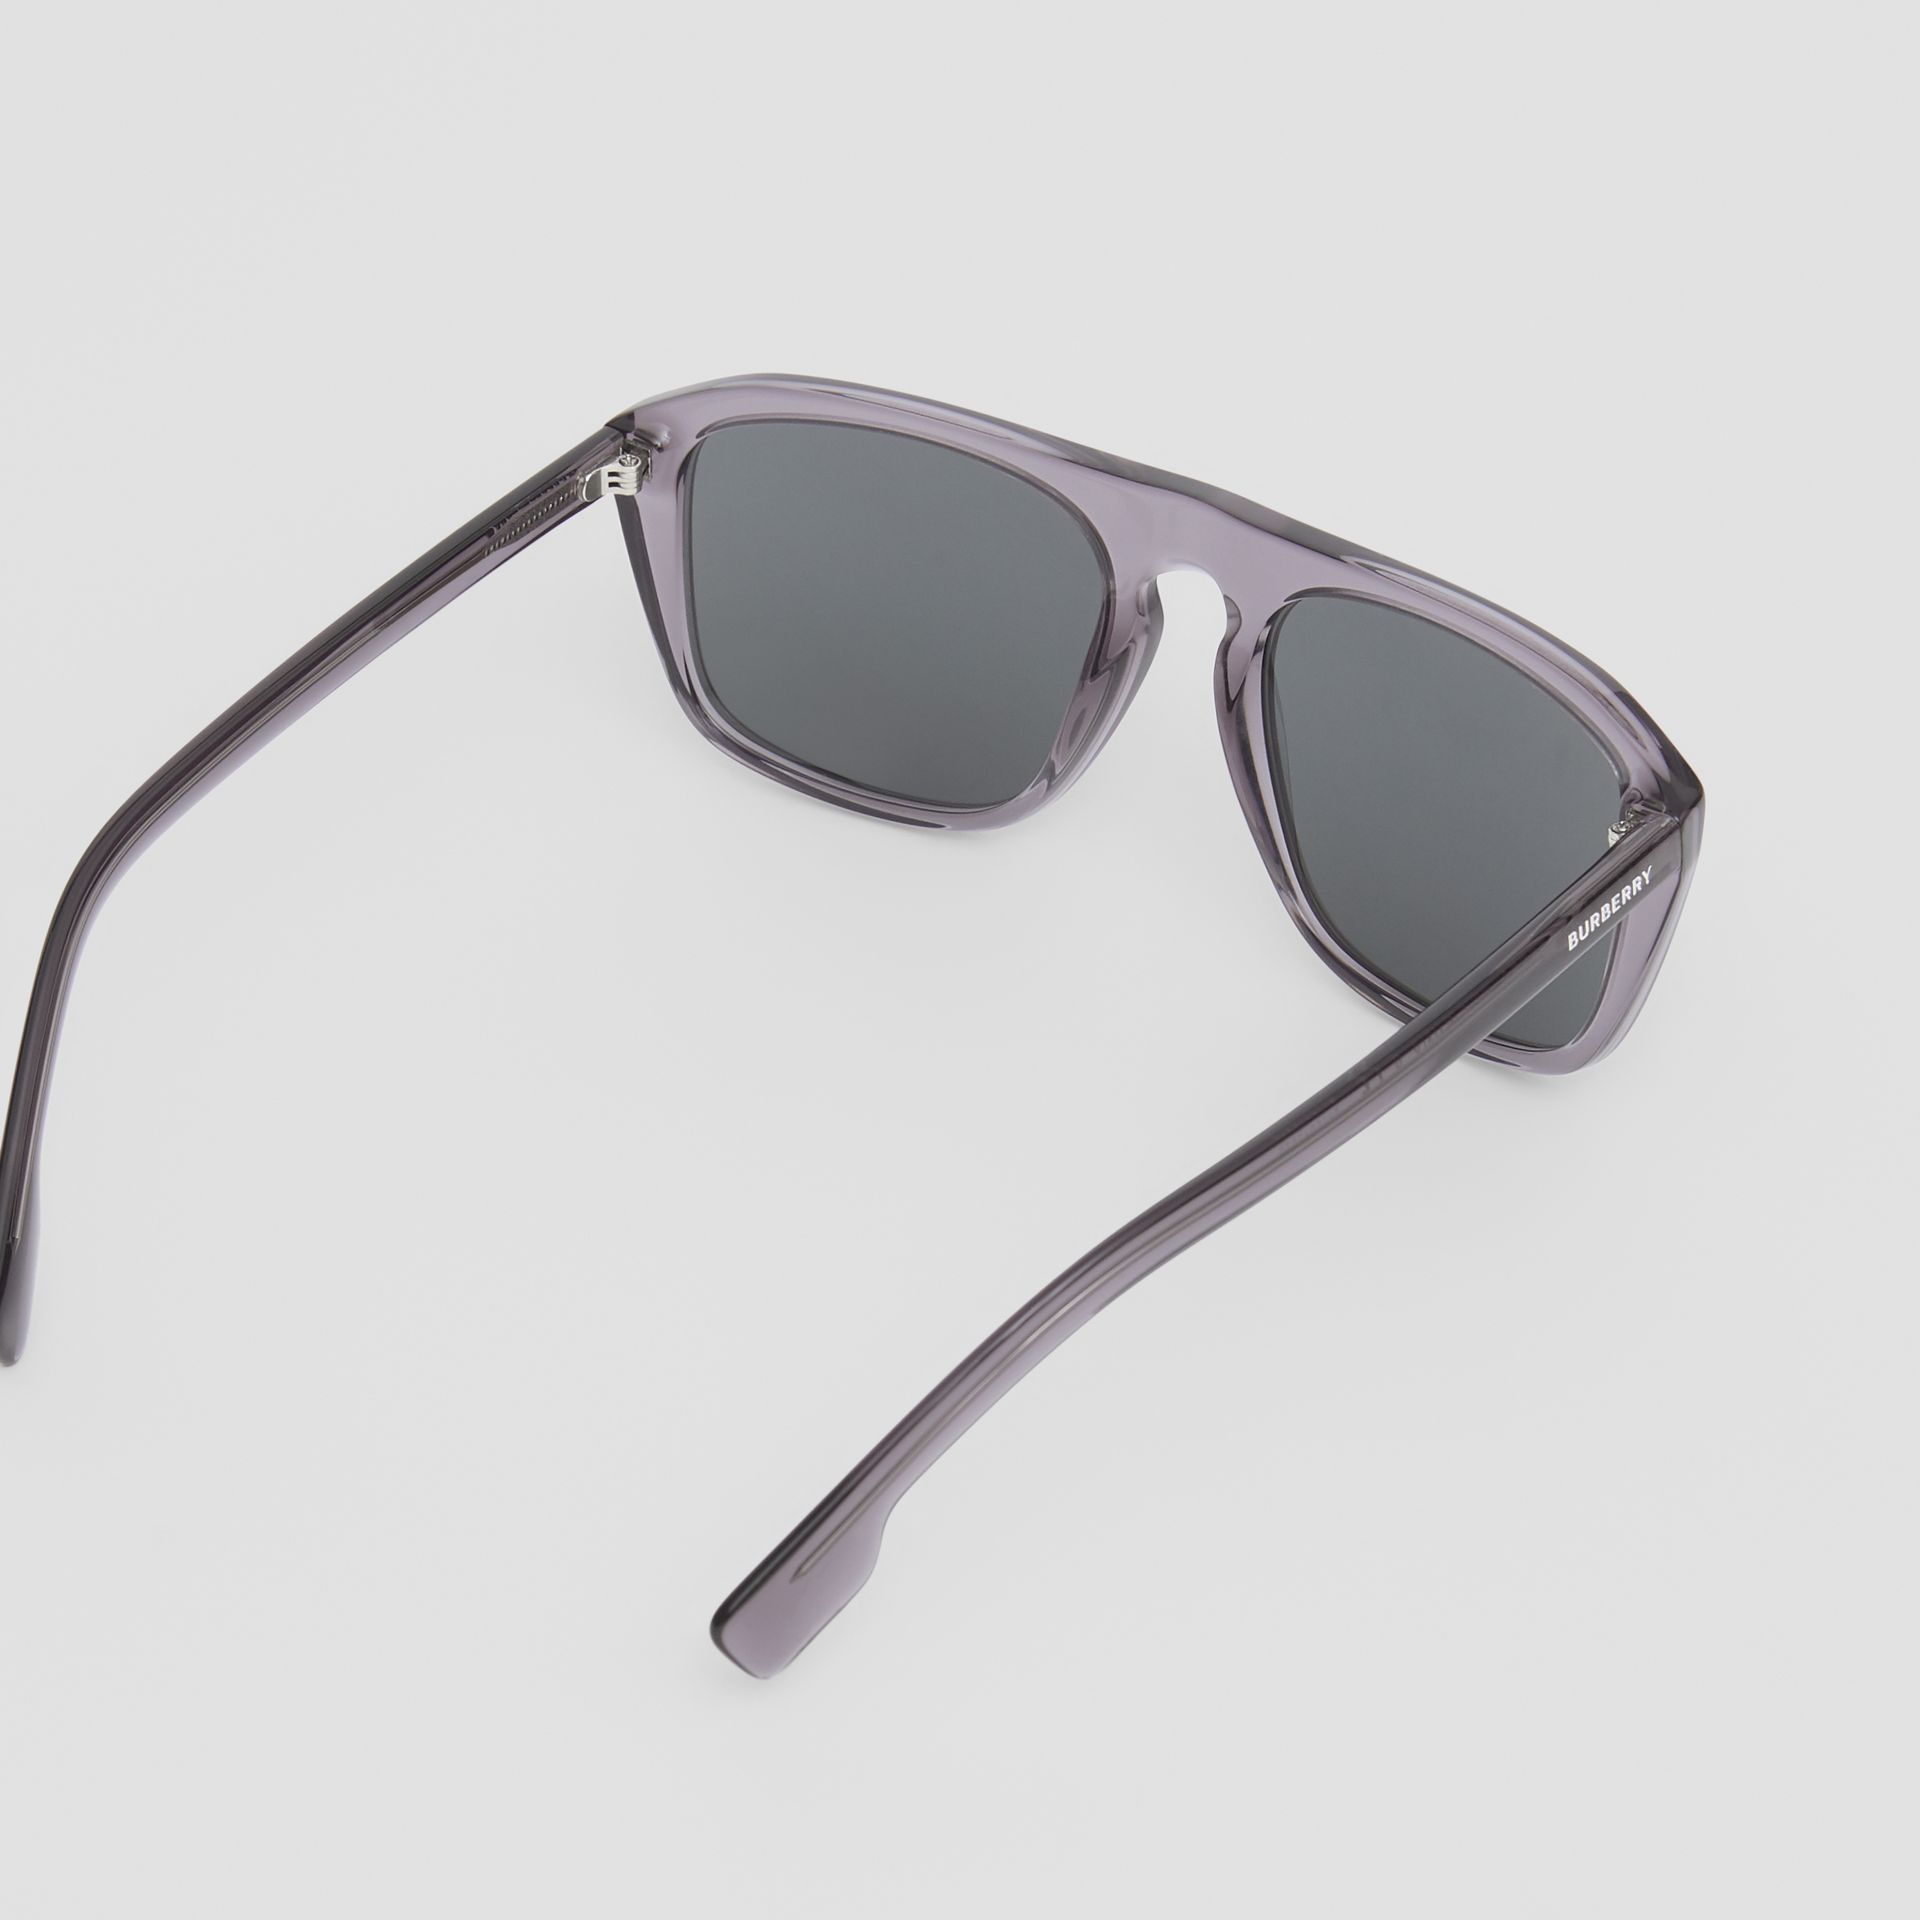 Square Frame Sunglasses in Grey - Men | Burberry - gallery image 3